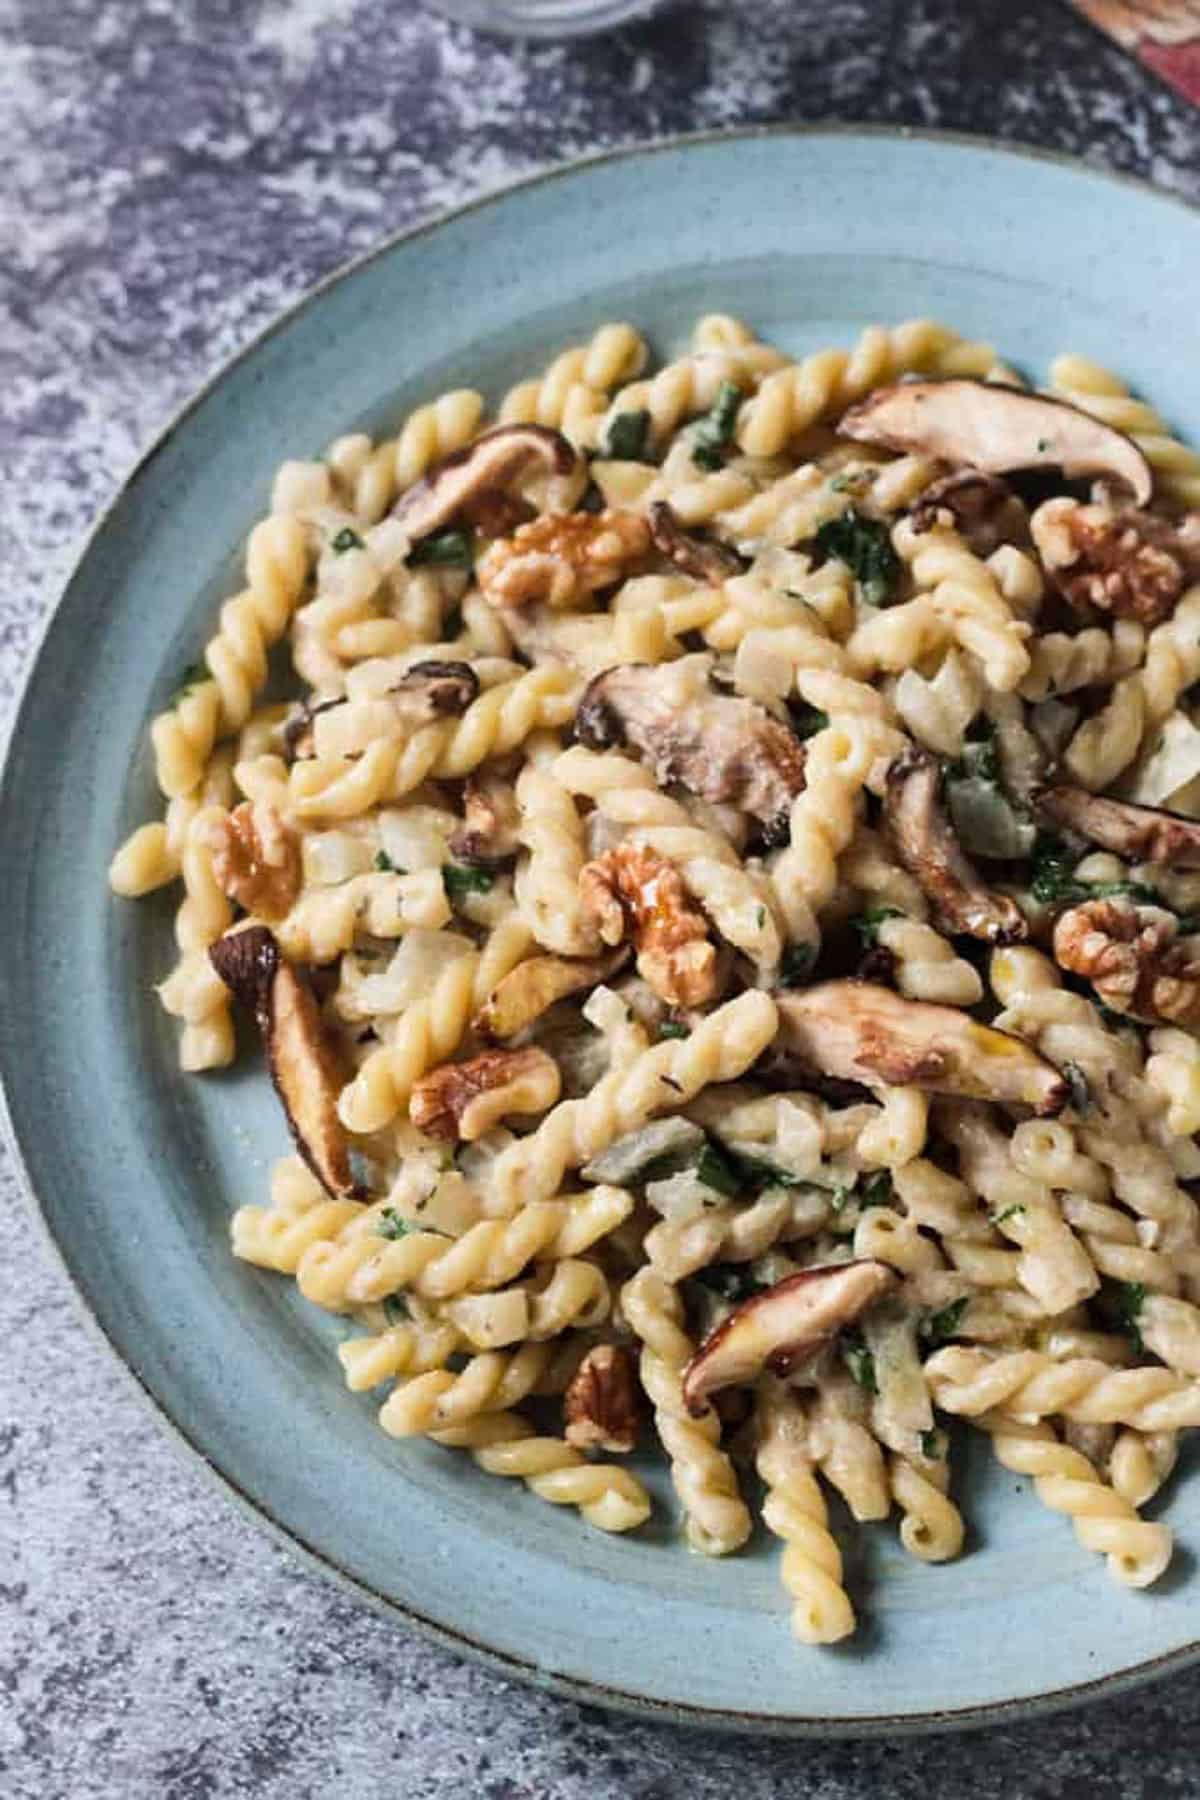 Close up of a plate of creamy mushroom pasta topped with walnuts.